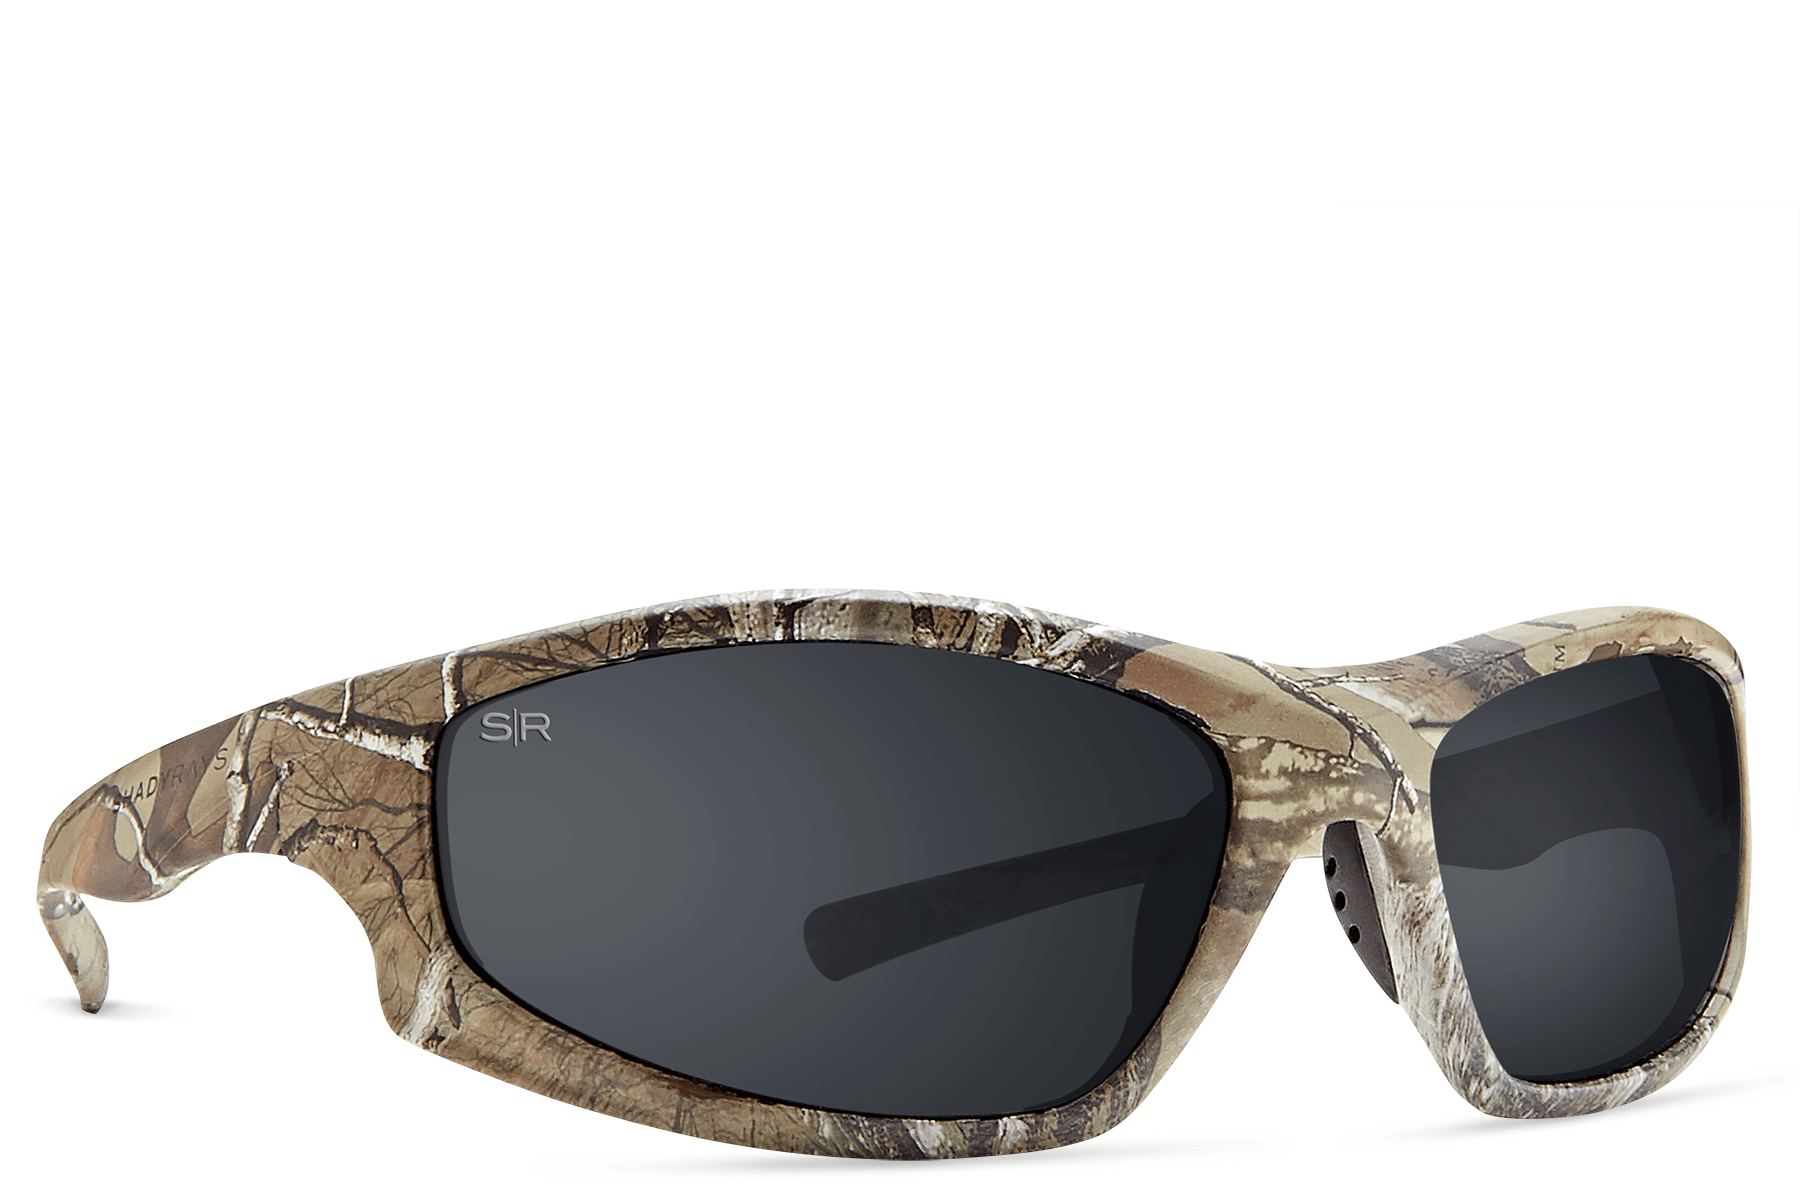 X Series - Realtree Edition : Blackout Polarized